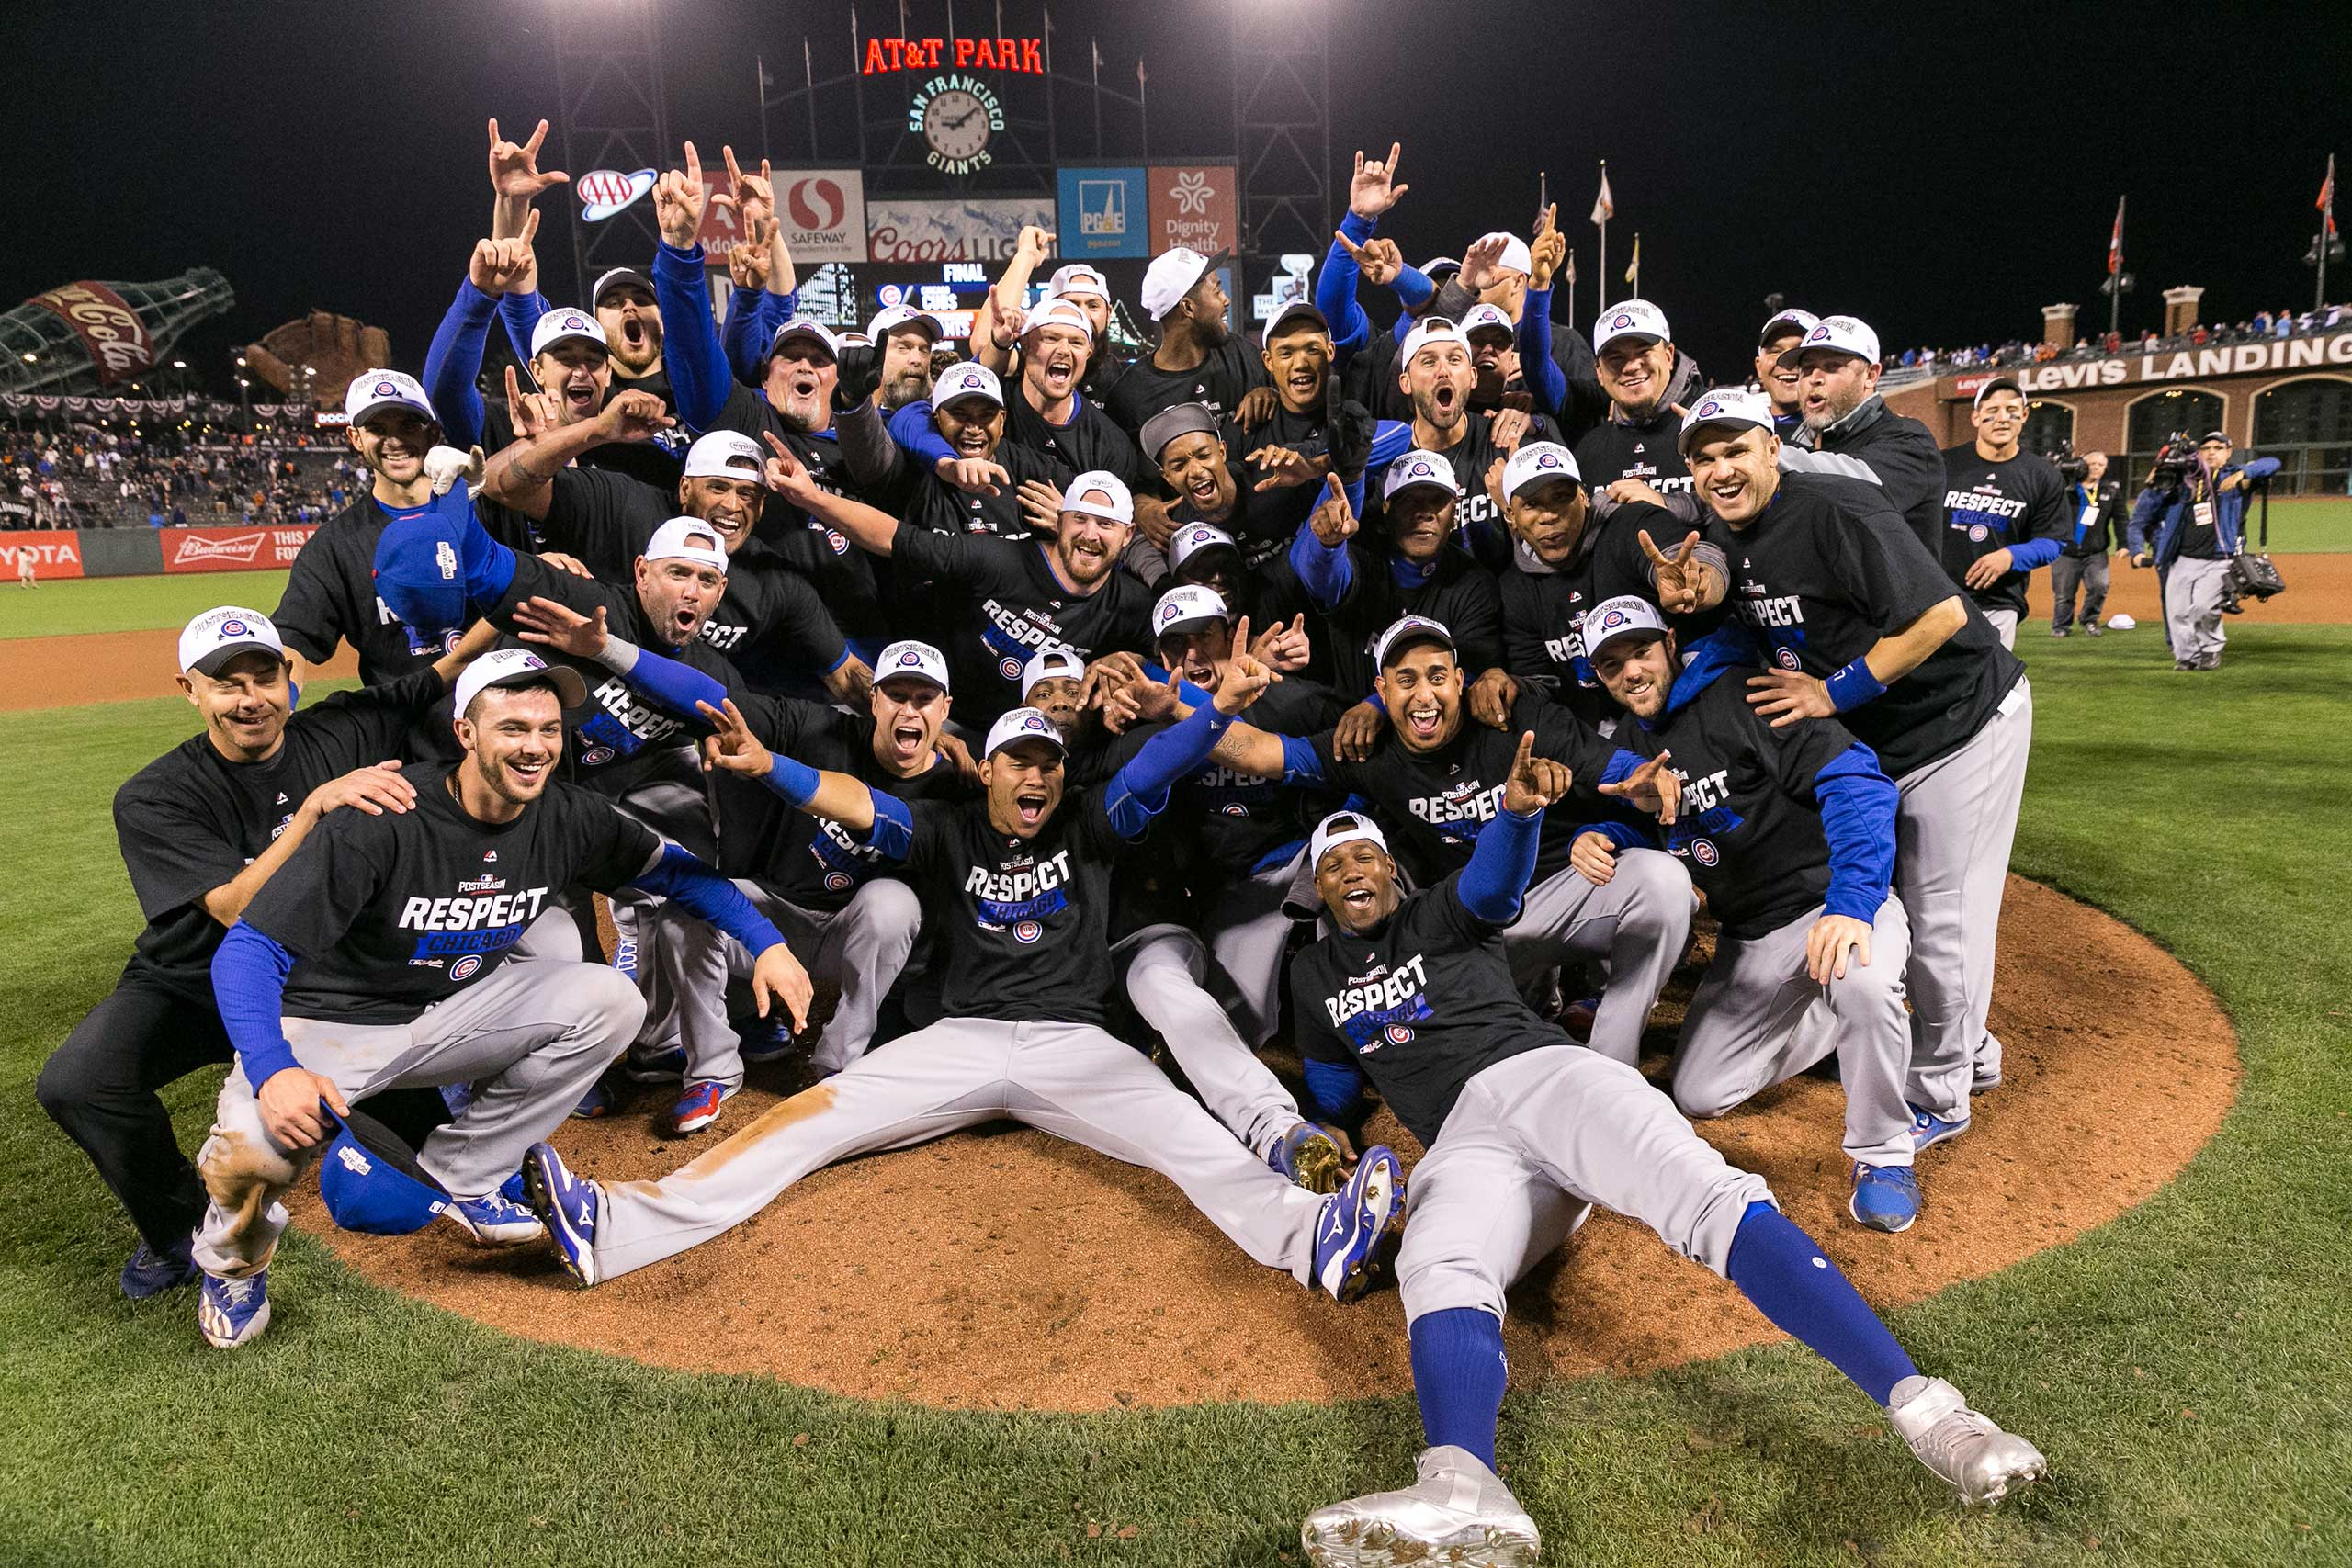 Cubs celebrate after Game 5 win of the NLDS, Oct. 11, 2016.